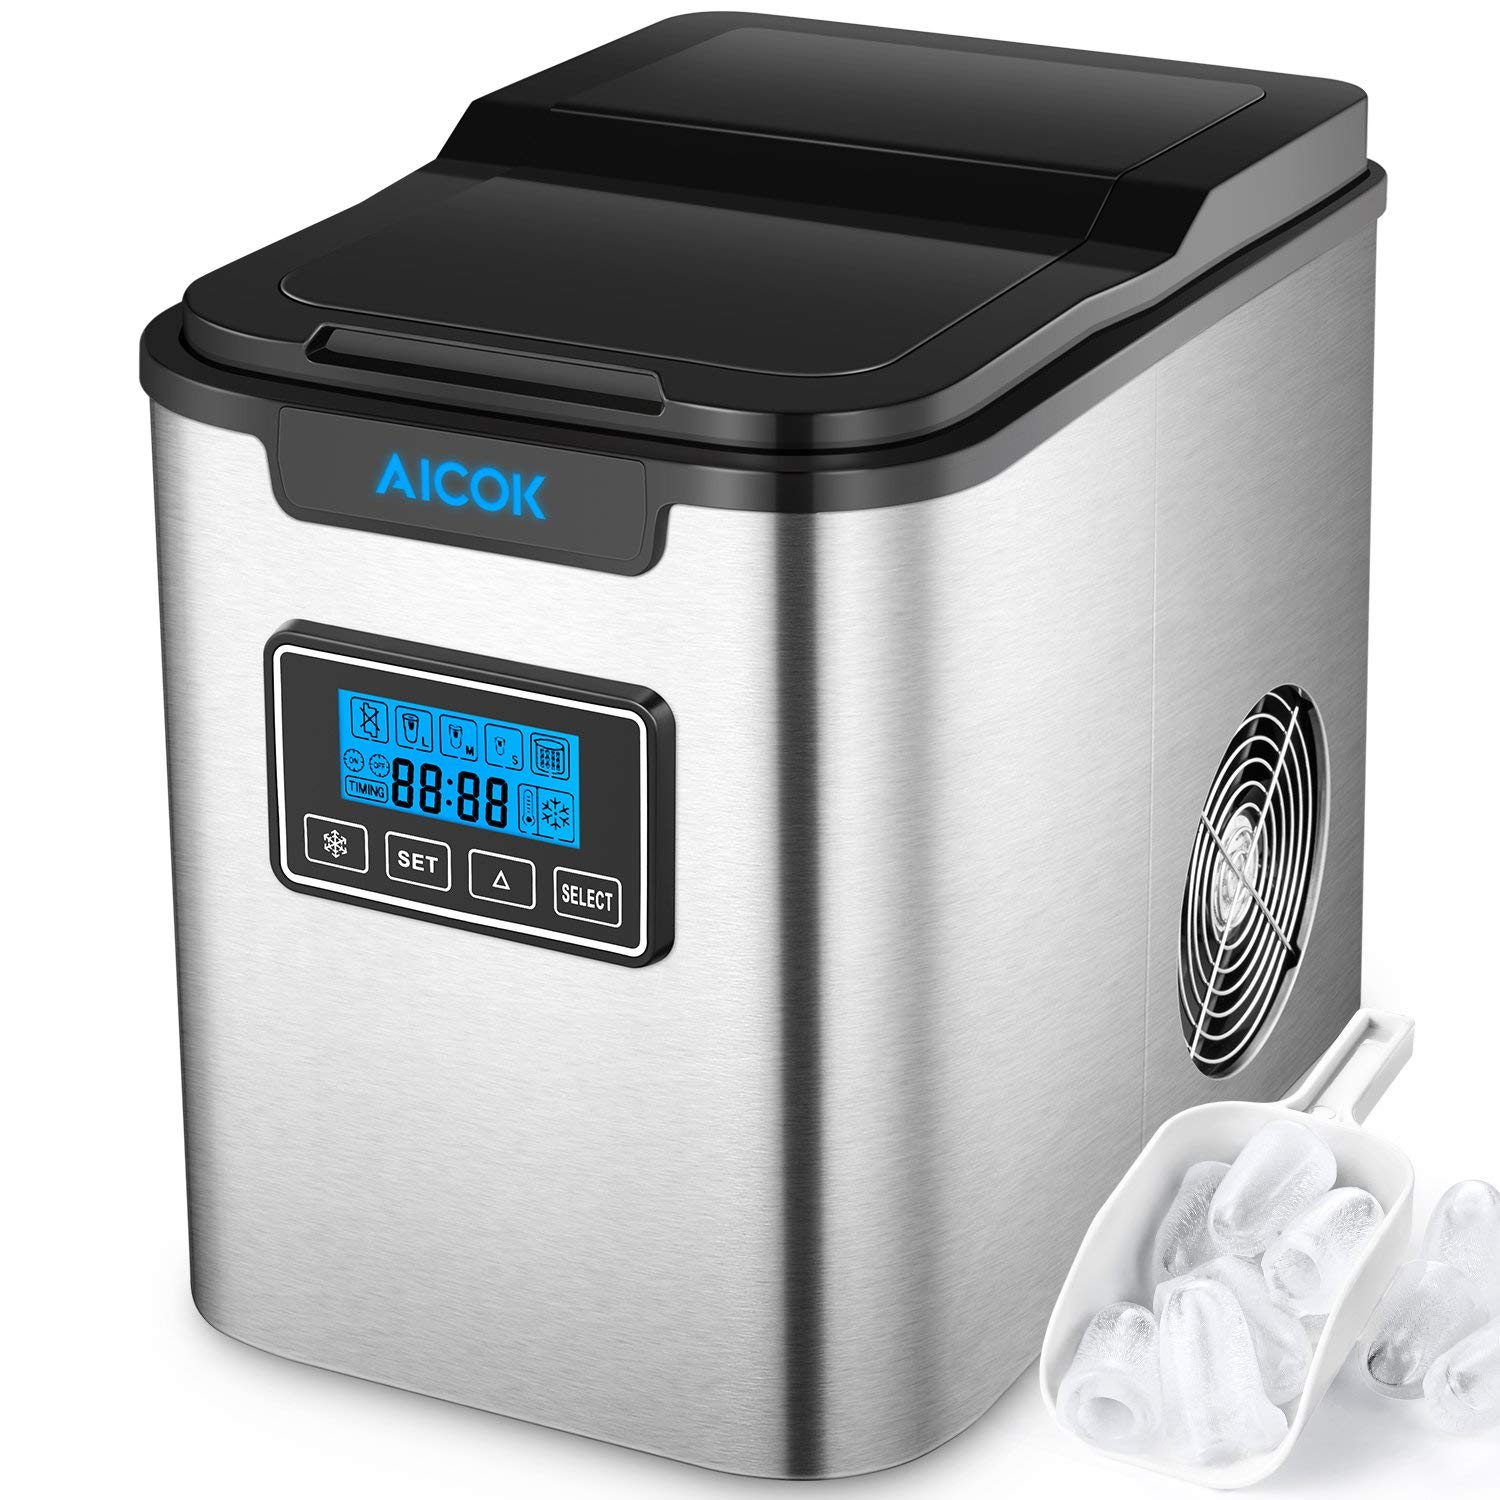 Portable Ice Maker Aicok, Countertop Ice Machine with Self-clean Function, Makes 26lbs Ice per 24 hours, 9 Ice Cubes ready in 6-10 Minutes, 2 Qt. Water Tank, LCD Display & Ice Scoop, Stainless Steel